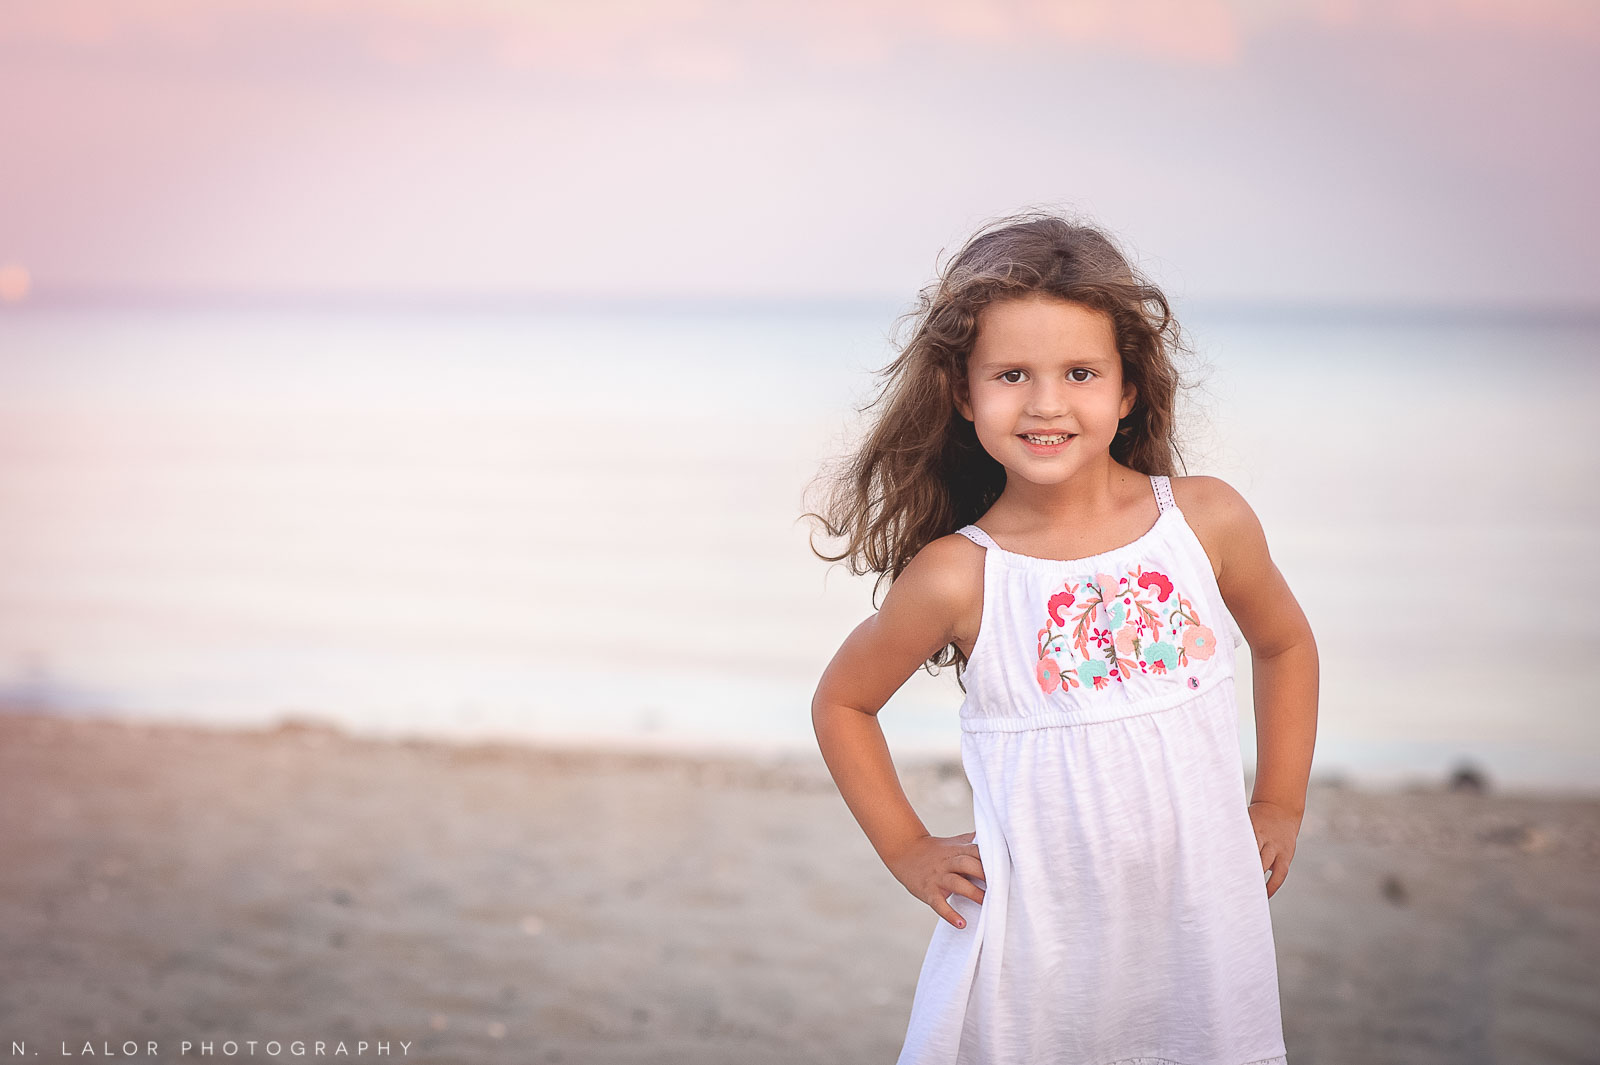 nlalor-photography-styled-beach-photo-session-milford-ct-13.jpg